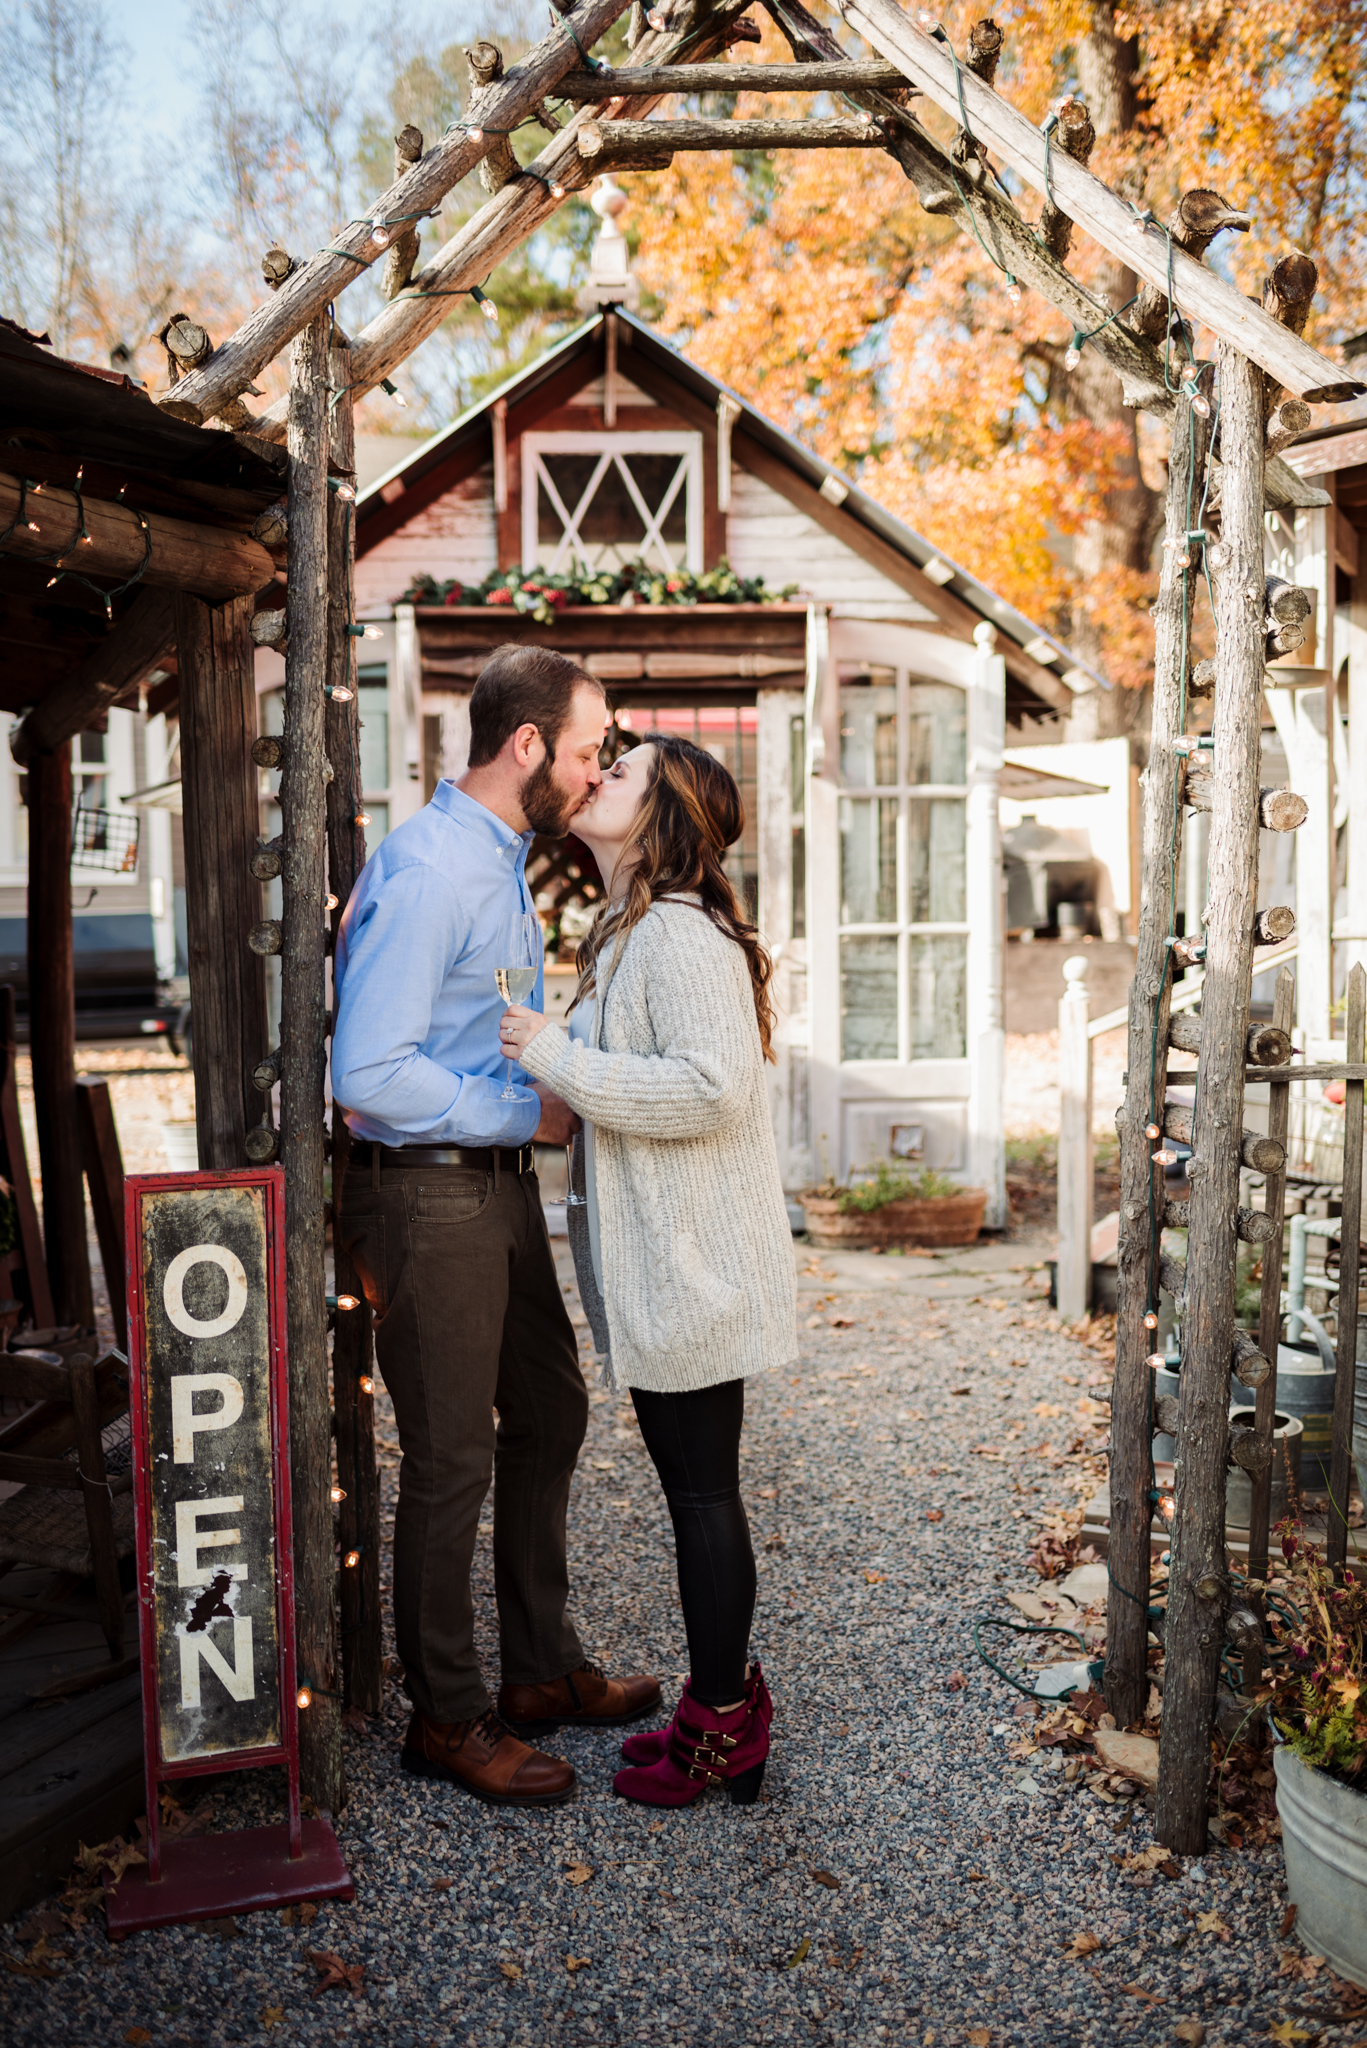 kissing-under-the-archway-during-their-Raleigh-engagement-session.jpg